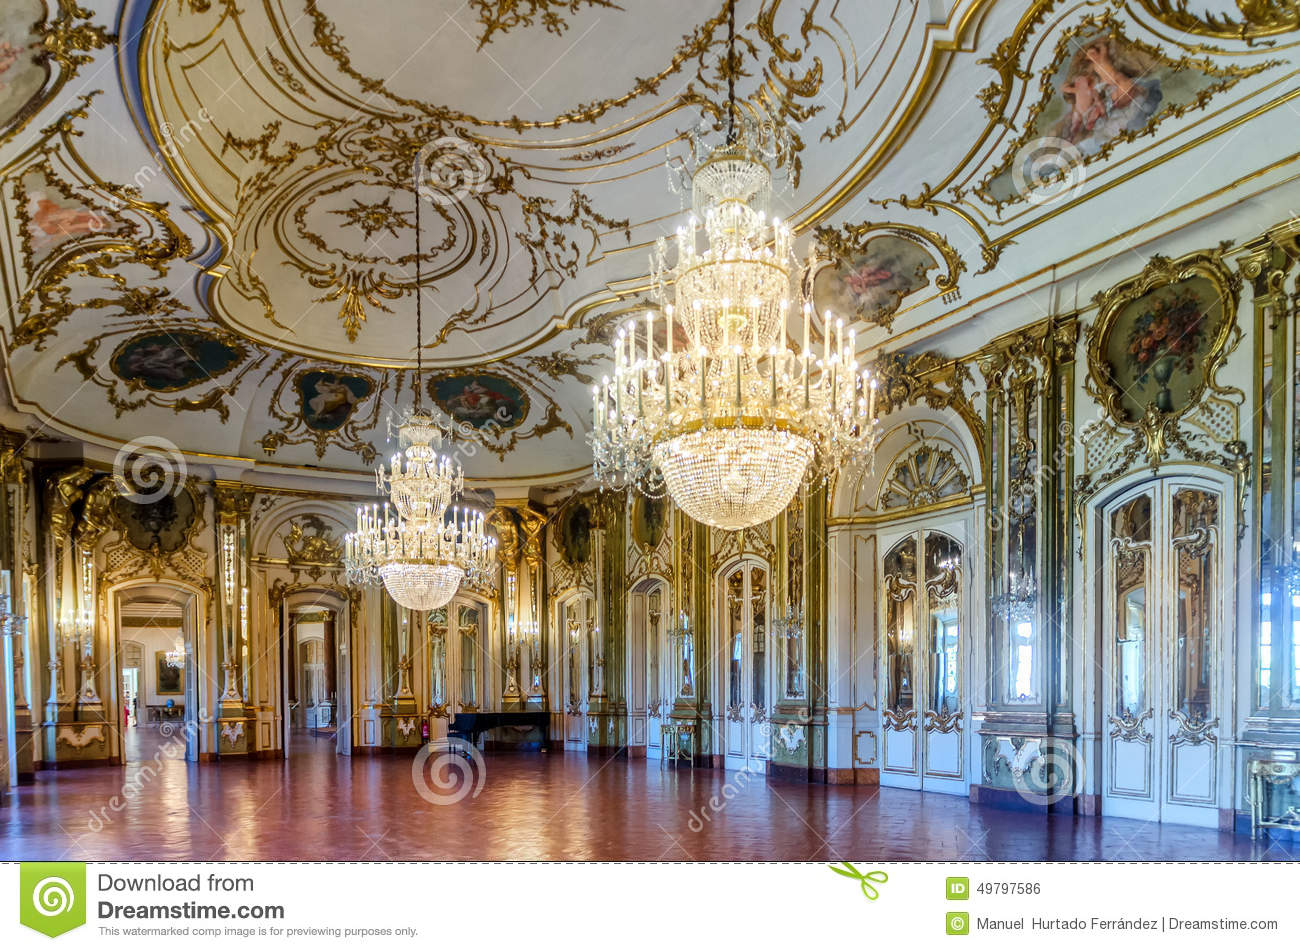 Queluz Portugal  City new picture : QUELUZ PORTUGAL AUGUST 24: The Ballroom of Queluz National Palace ...